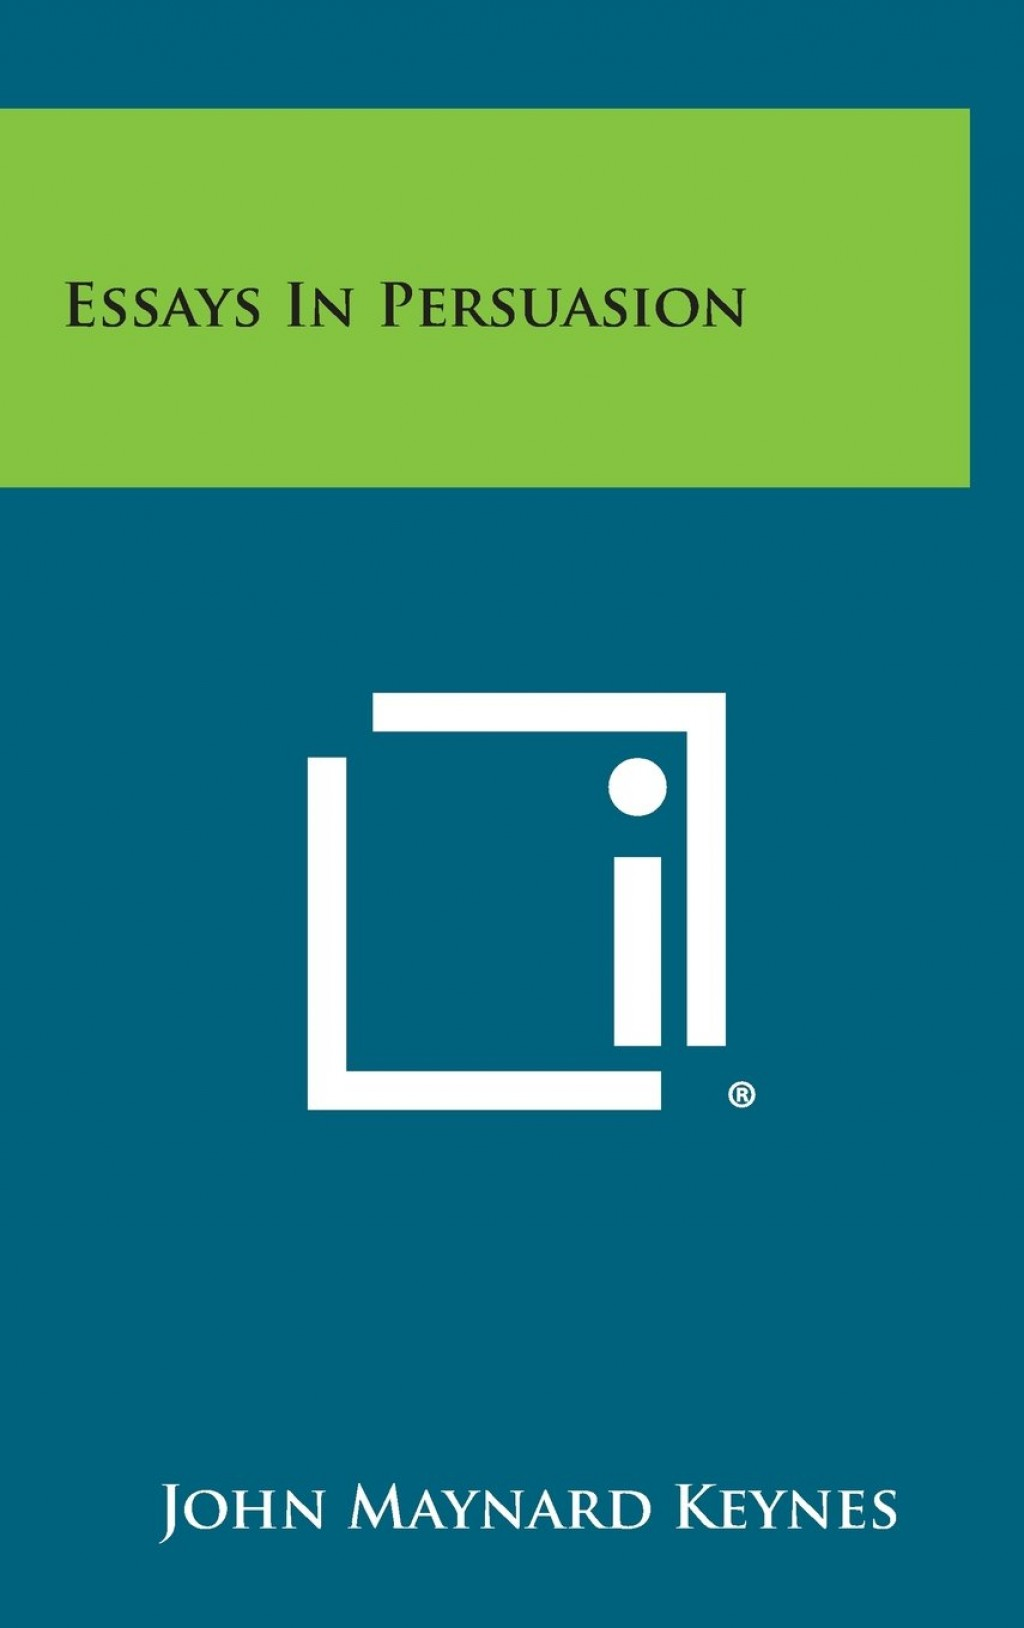 027 51xr5fg2batl Essay Example Essays In Remarkable Persuasion Keynes 1931 Wikipedia Summary Large